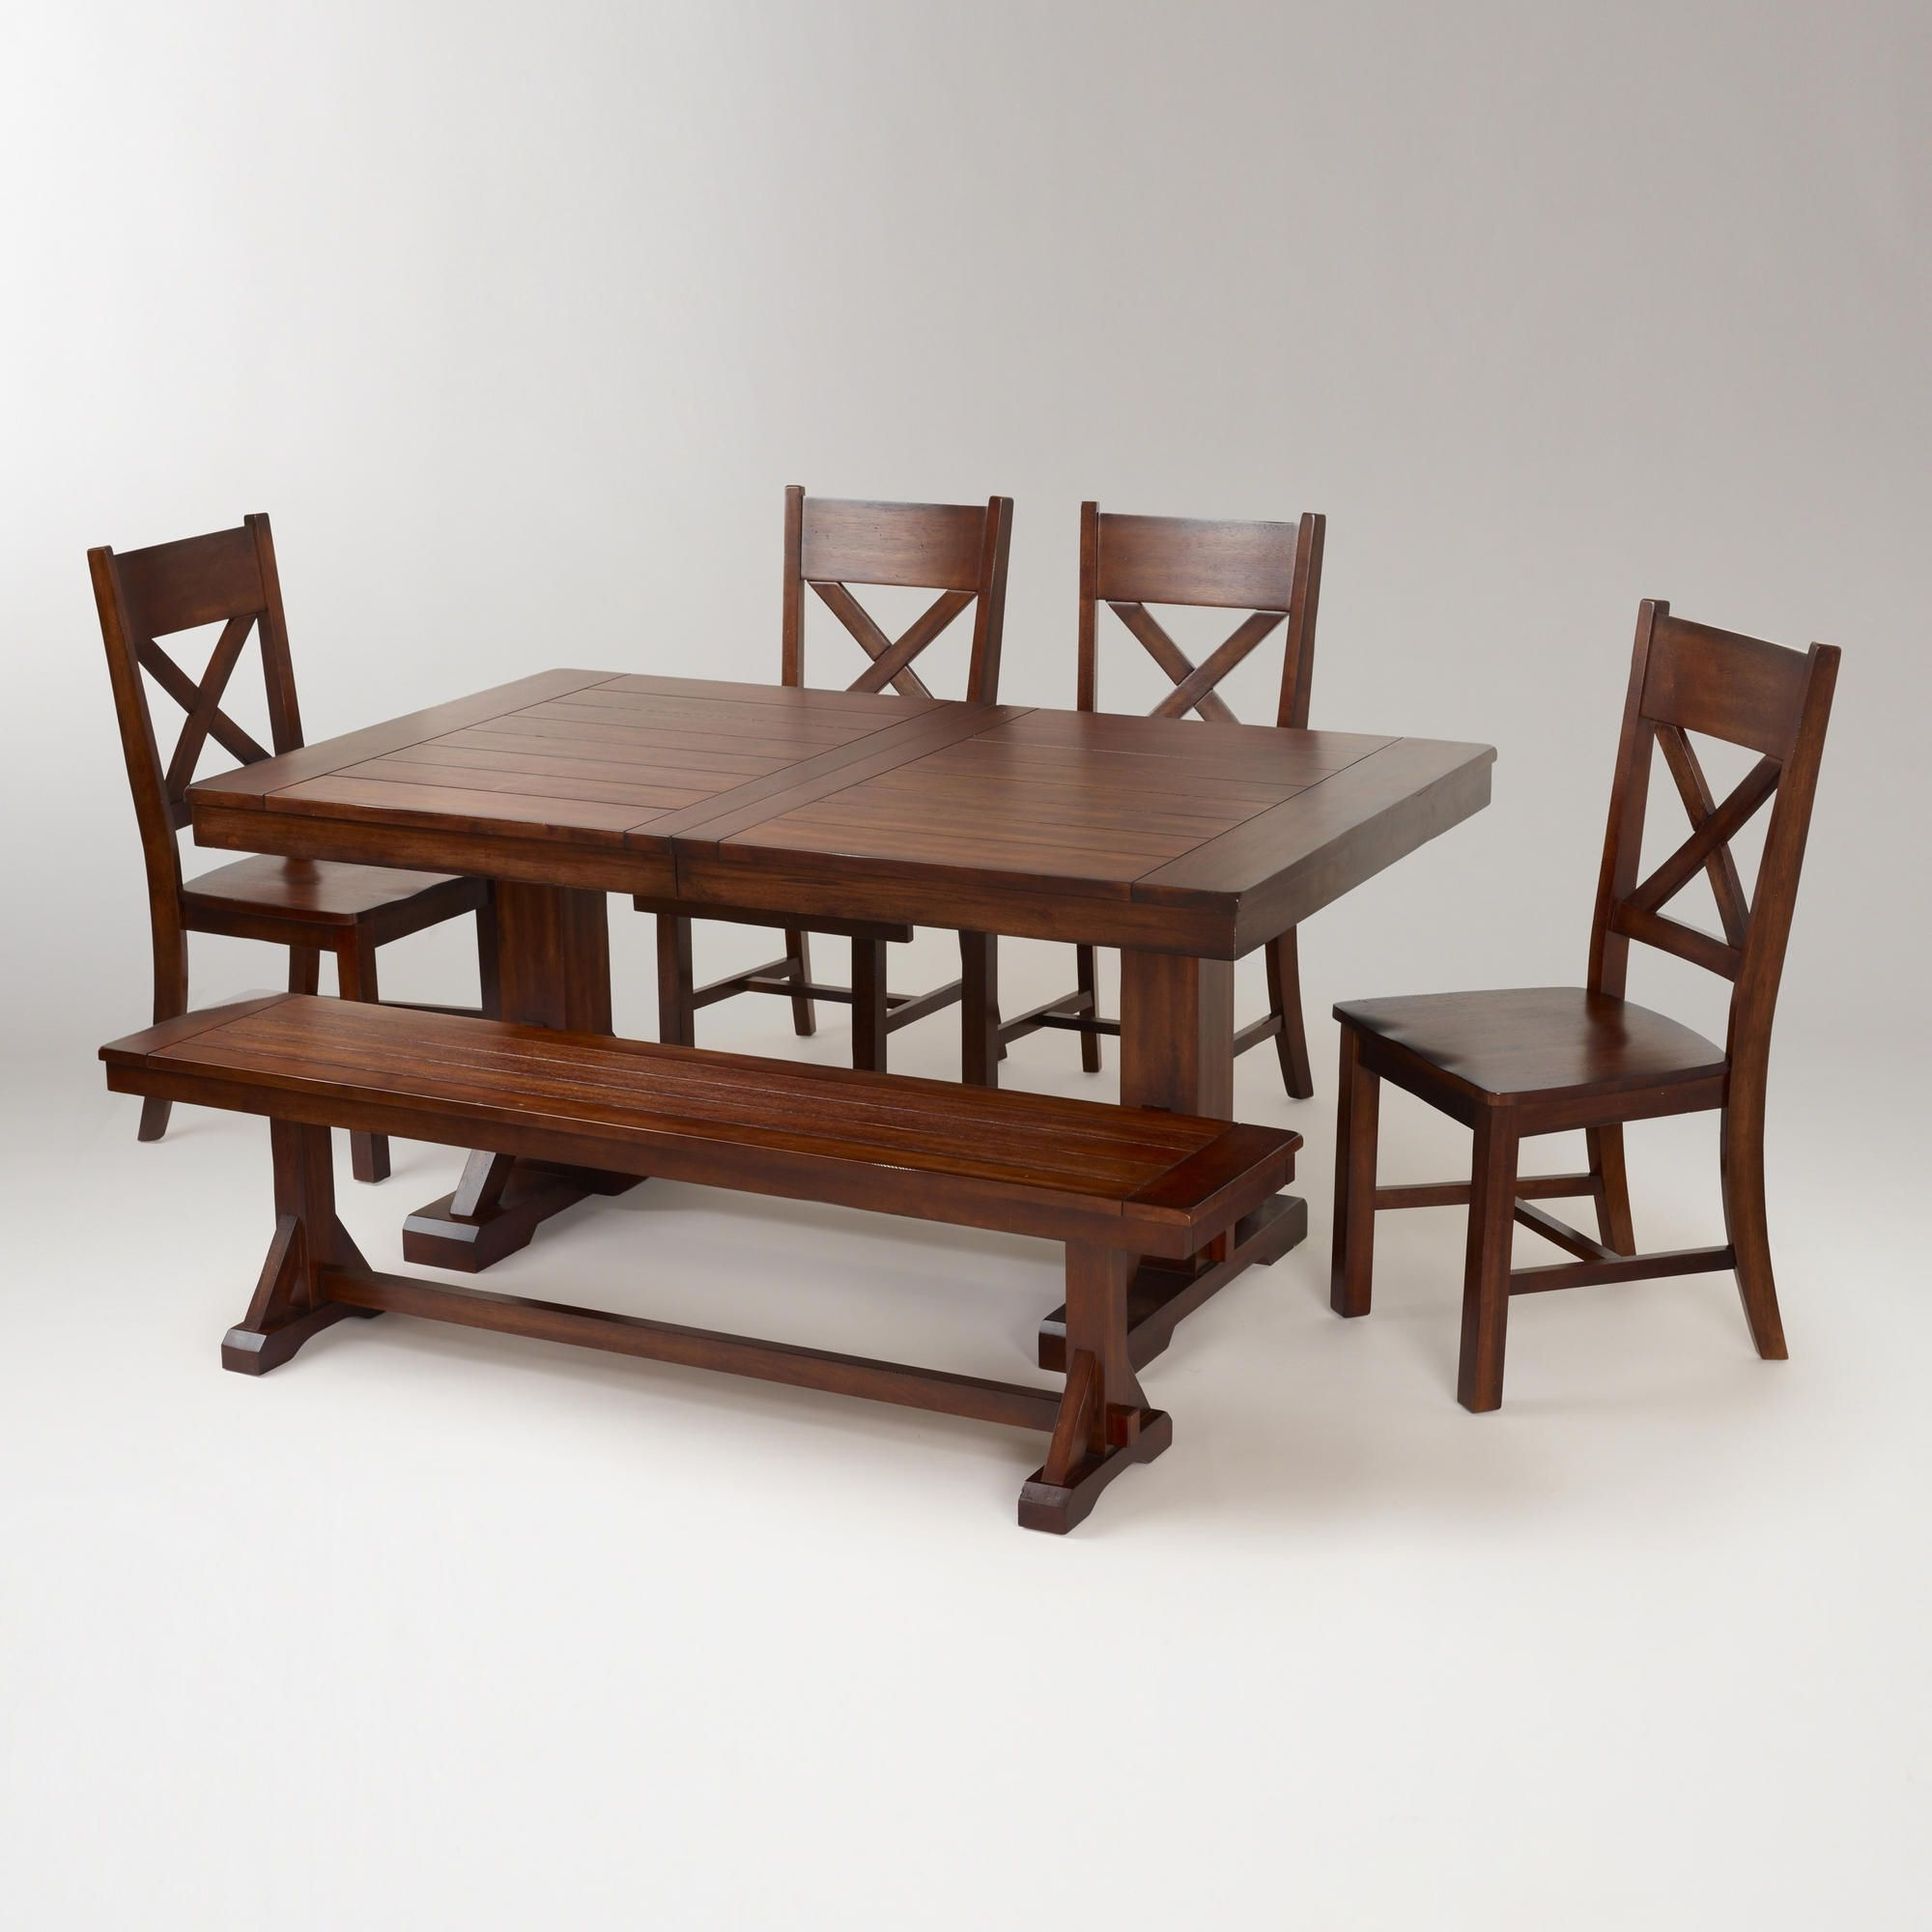 Verona Dining Tables For Well Known Mahogany Verona Dining Collection Dining Tables Dining Room (View 17 of 25)